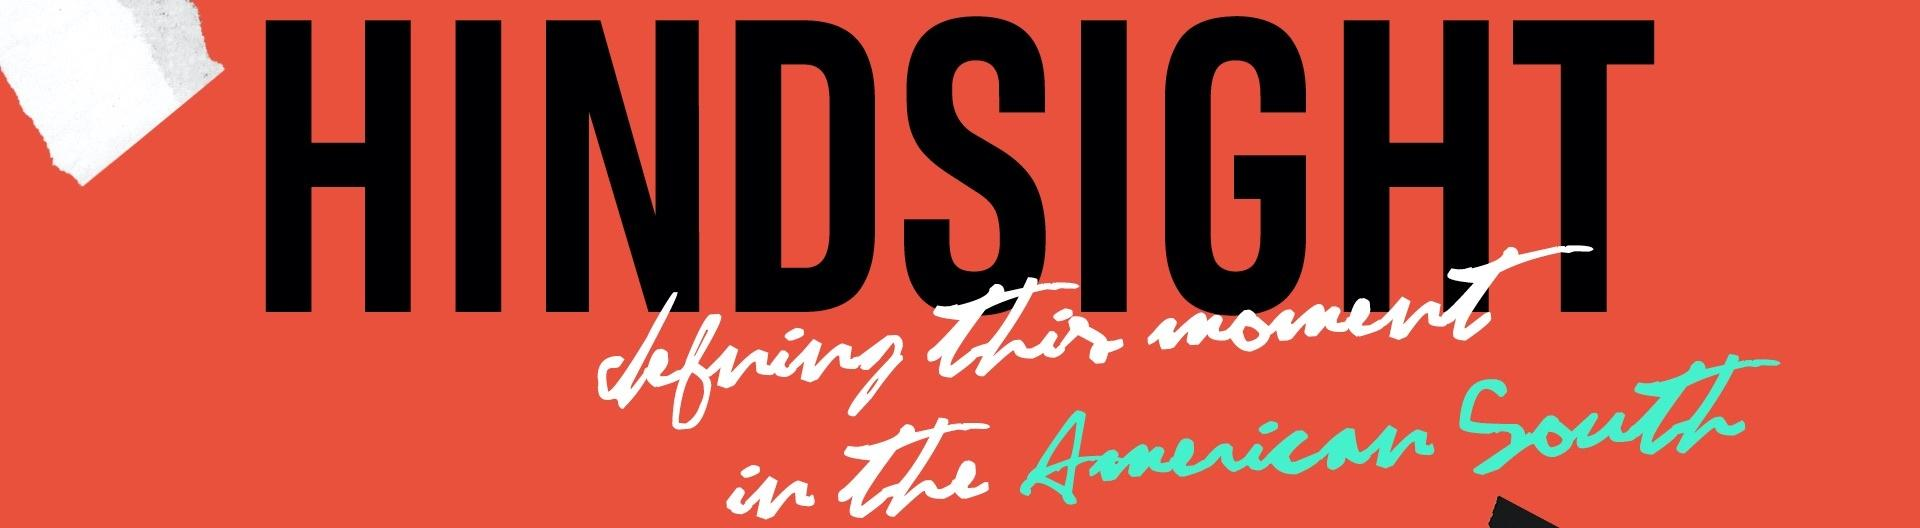 Hindsight logo in black font on red background with tagline: defining their moment in the American South